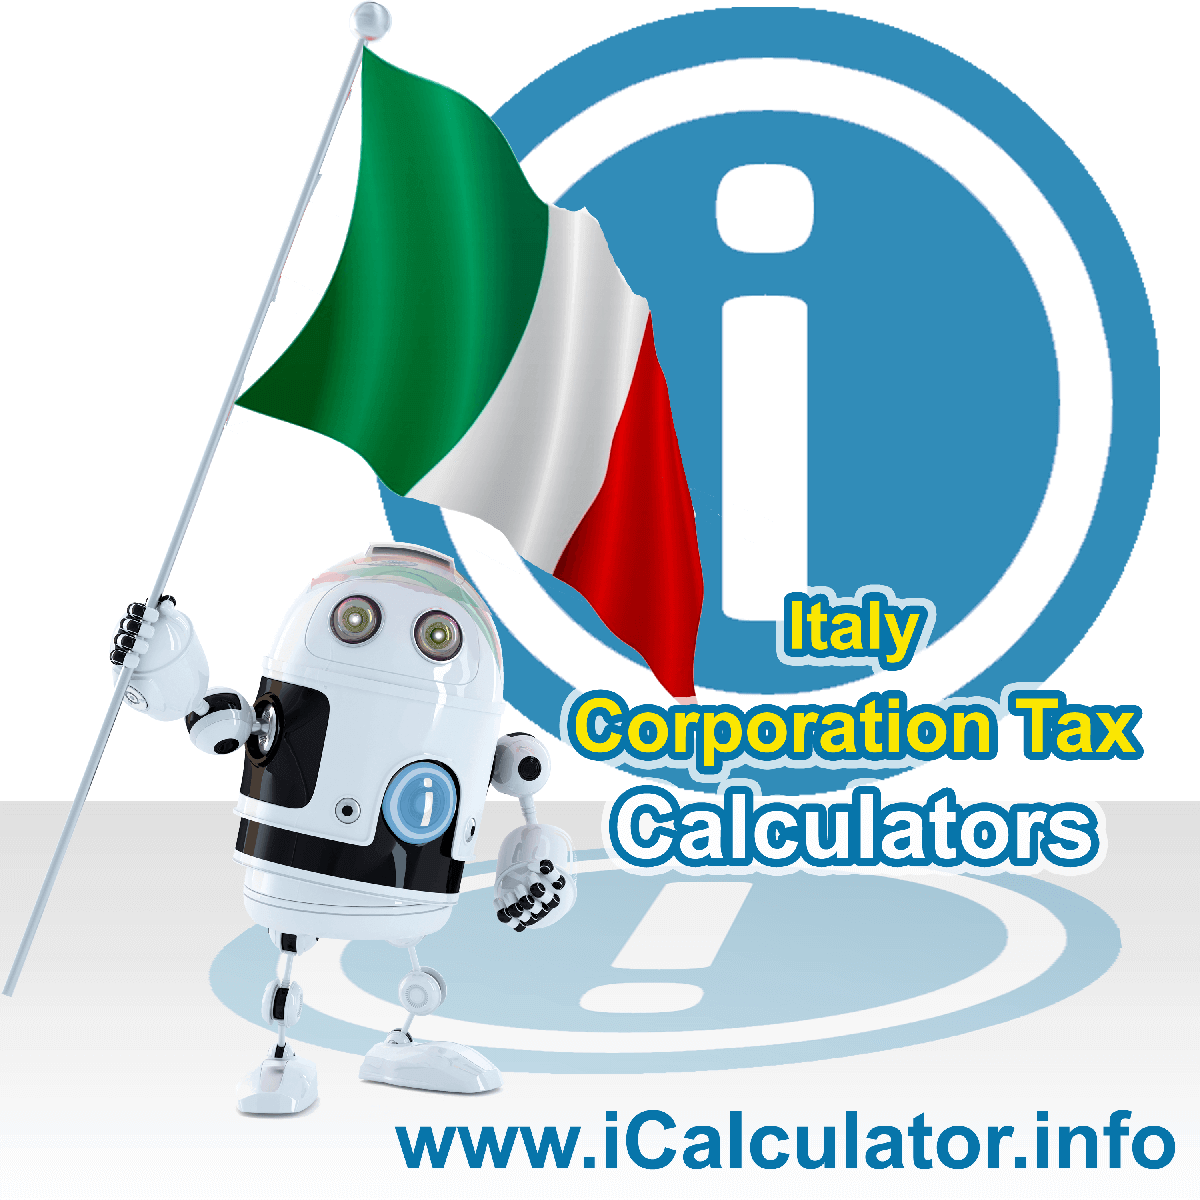 Italy Corporation Tax Calculator. This image shows the Italy flag and information relating to the corporation tax rate formula used for calculating Corporation Tax in Italy using the Italy Corporation Tax Calculator in 2020